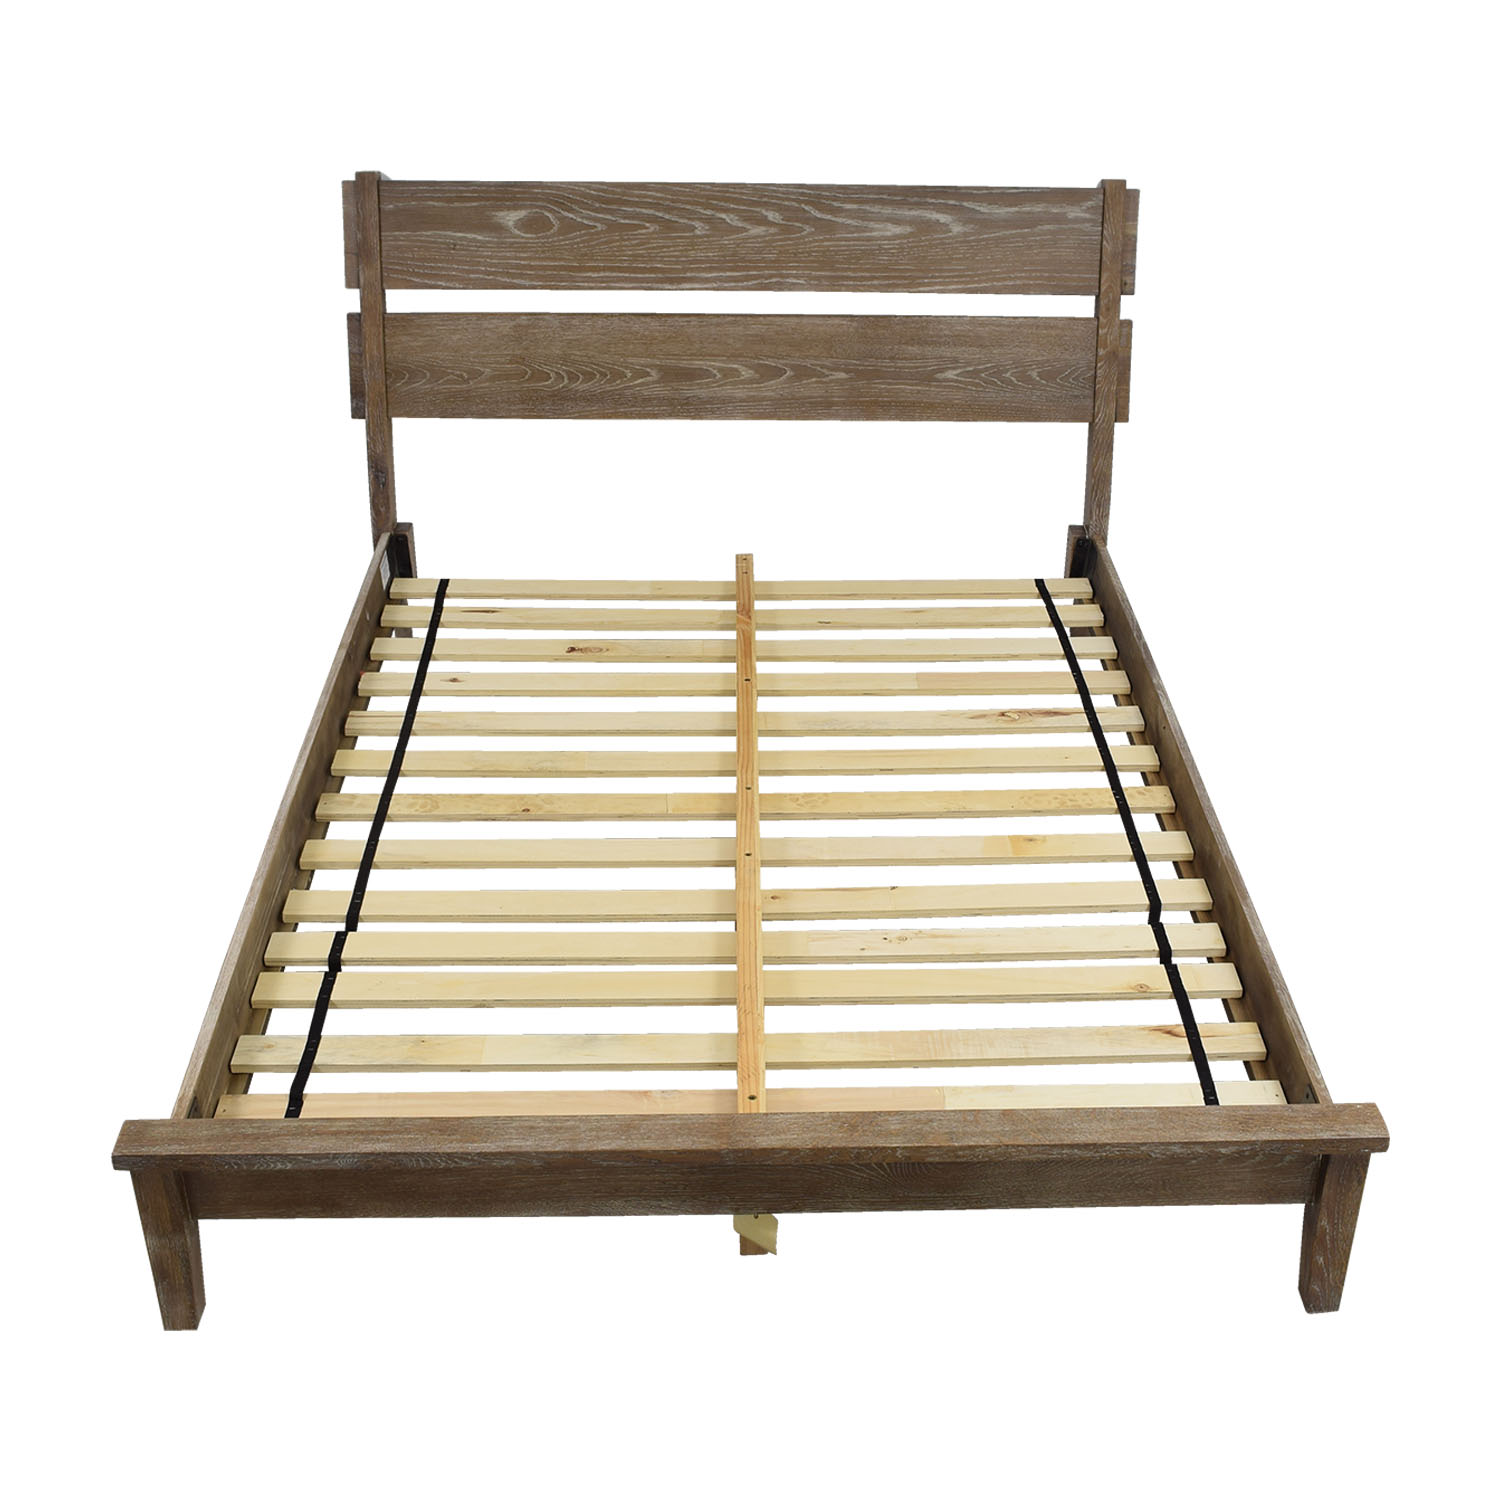 shop Ink + Ivy Oaktown Rustic Queen Platform Bed Frame Ink + Ivy Beds